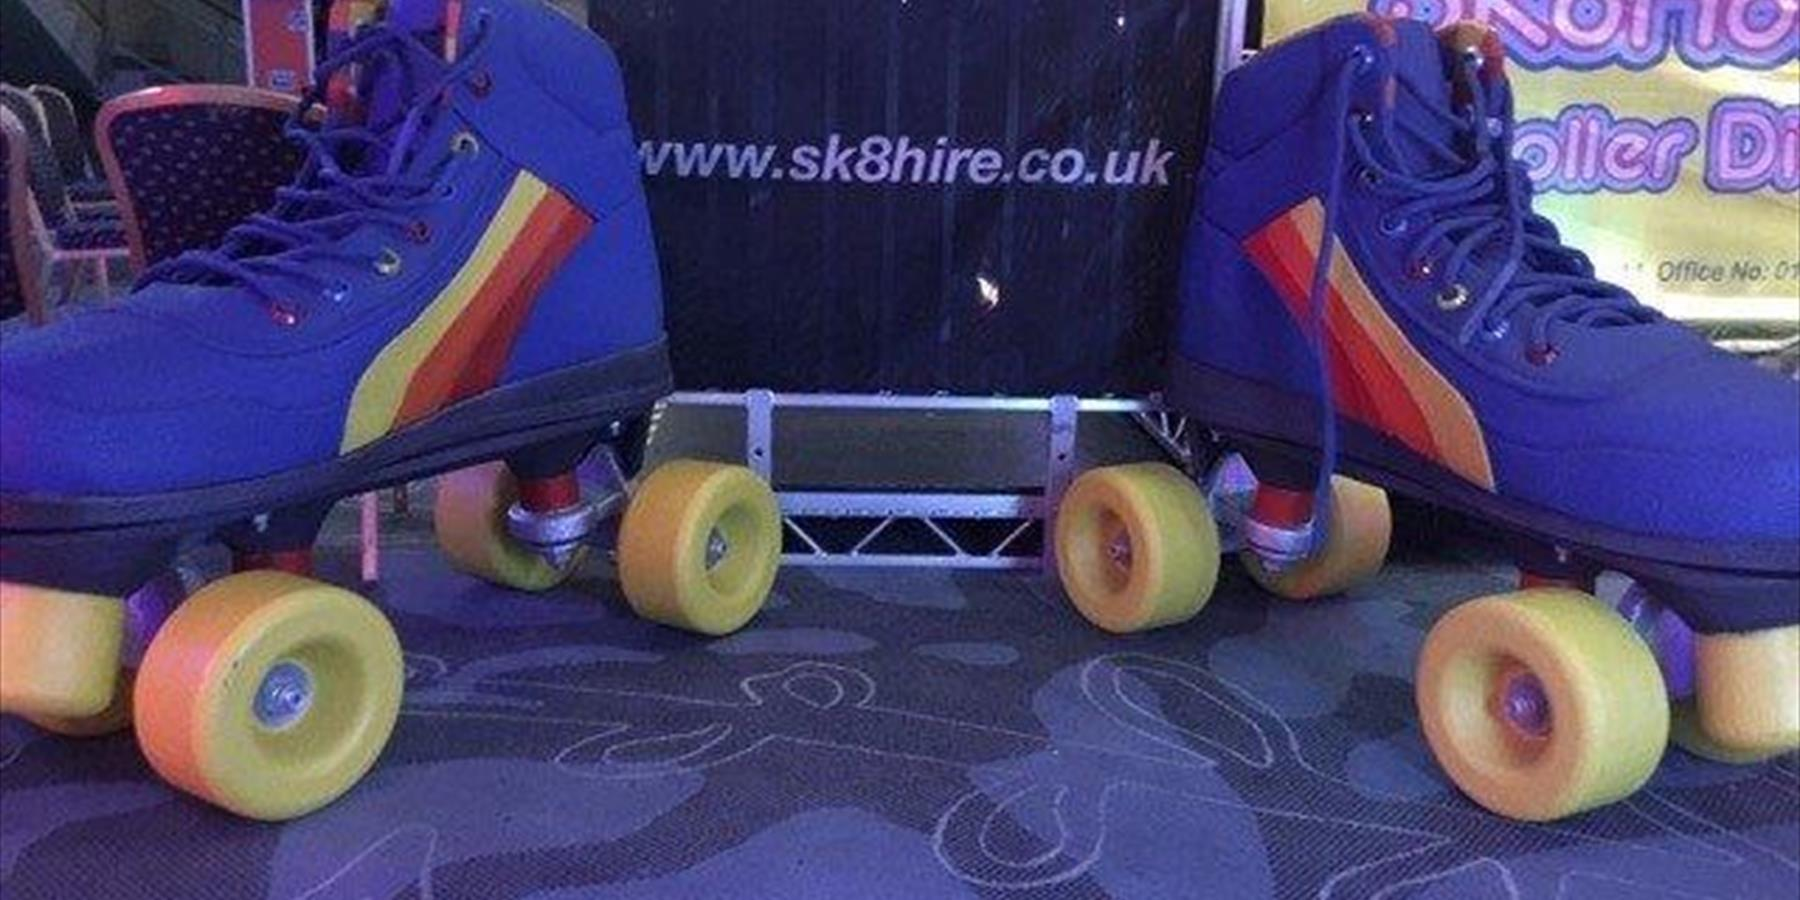 A pair of giant roller skates